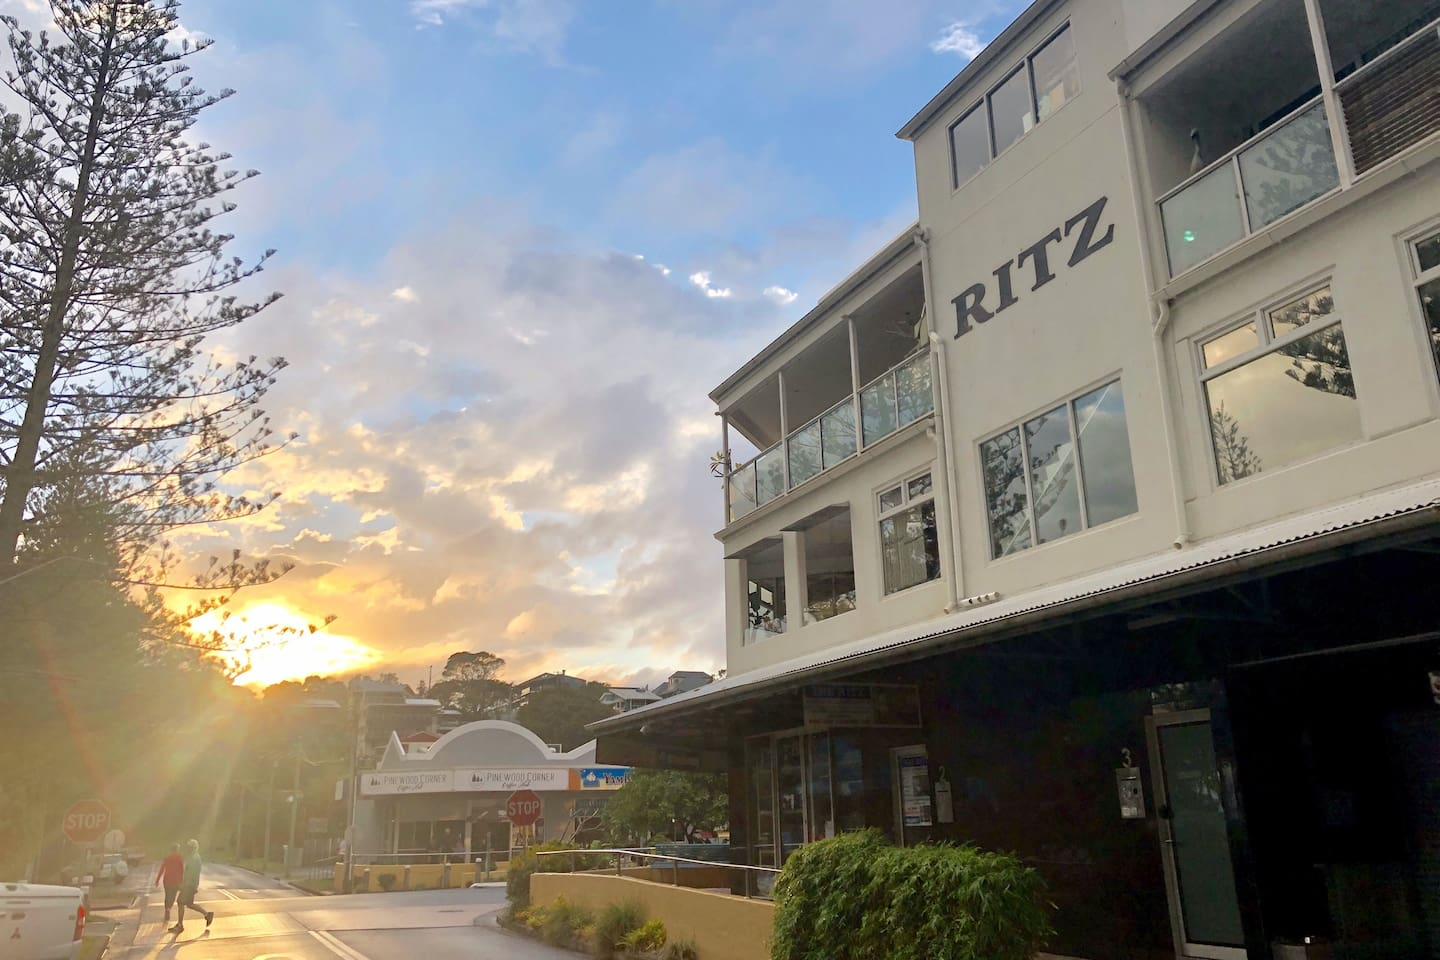 The Ritz is a first floor stylish apartment  located in the picturesque, seaside village of Yamba.  Voted the 'Best Town' in Australia in 2009, a decade later Yamba has not lost any of its friendly charm, relaxed atmosphere or sensational eateries.